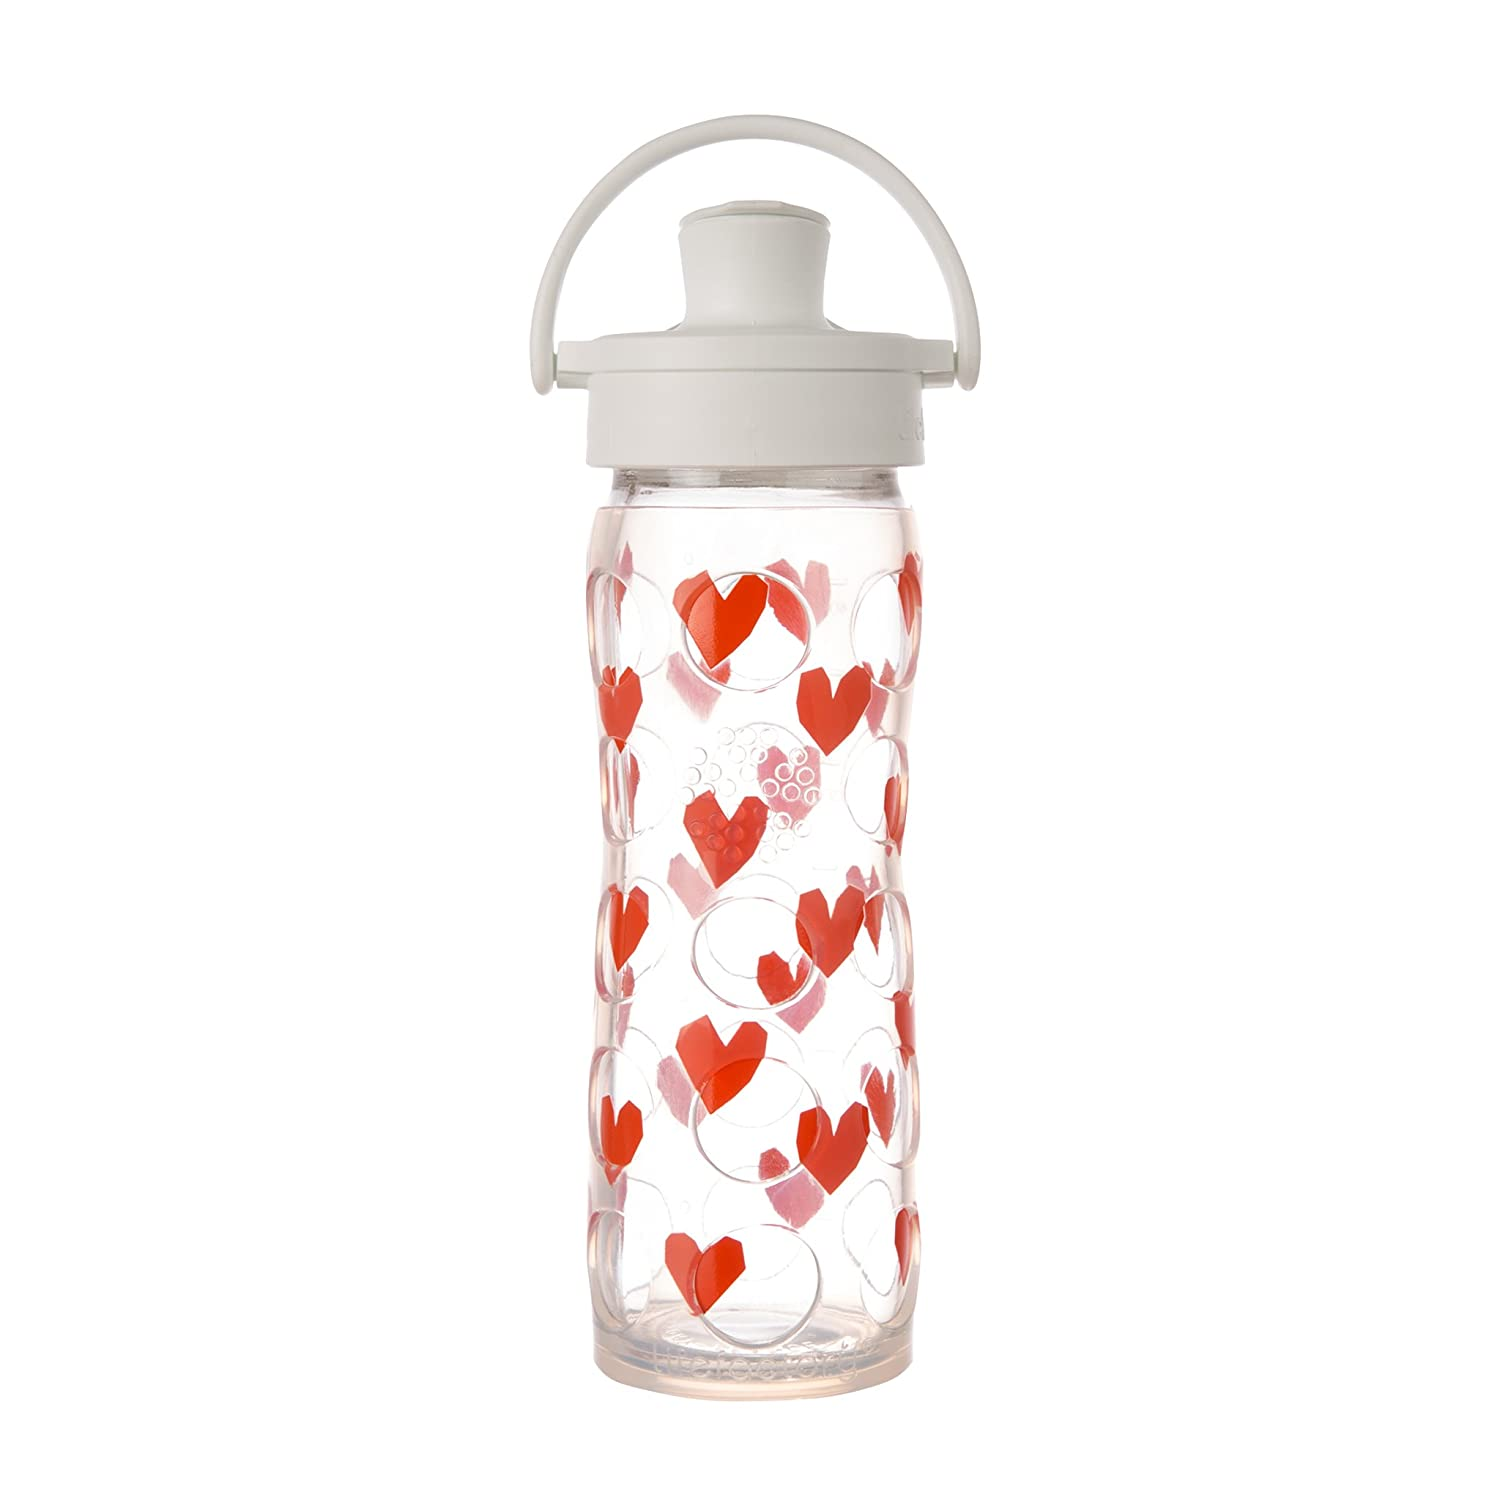 Tru Luv Lifefactory 16-Ounce BPA-Free Glass Water Bottle with Active Flip Cap and Silicone Sleeve